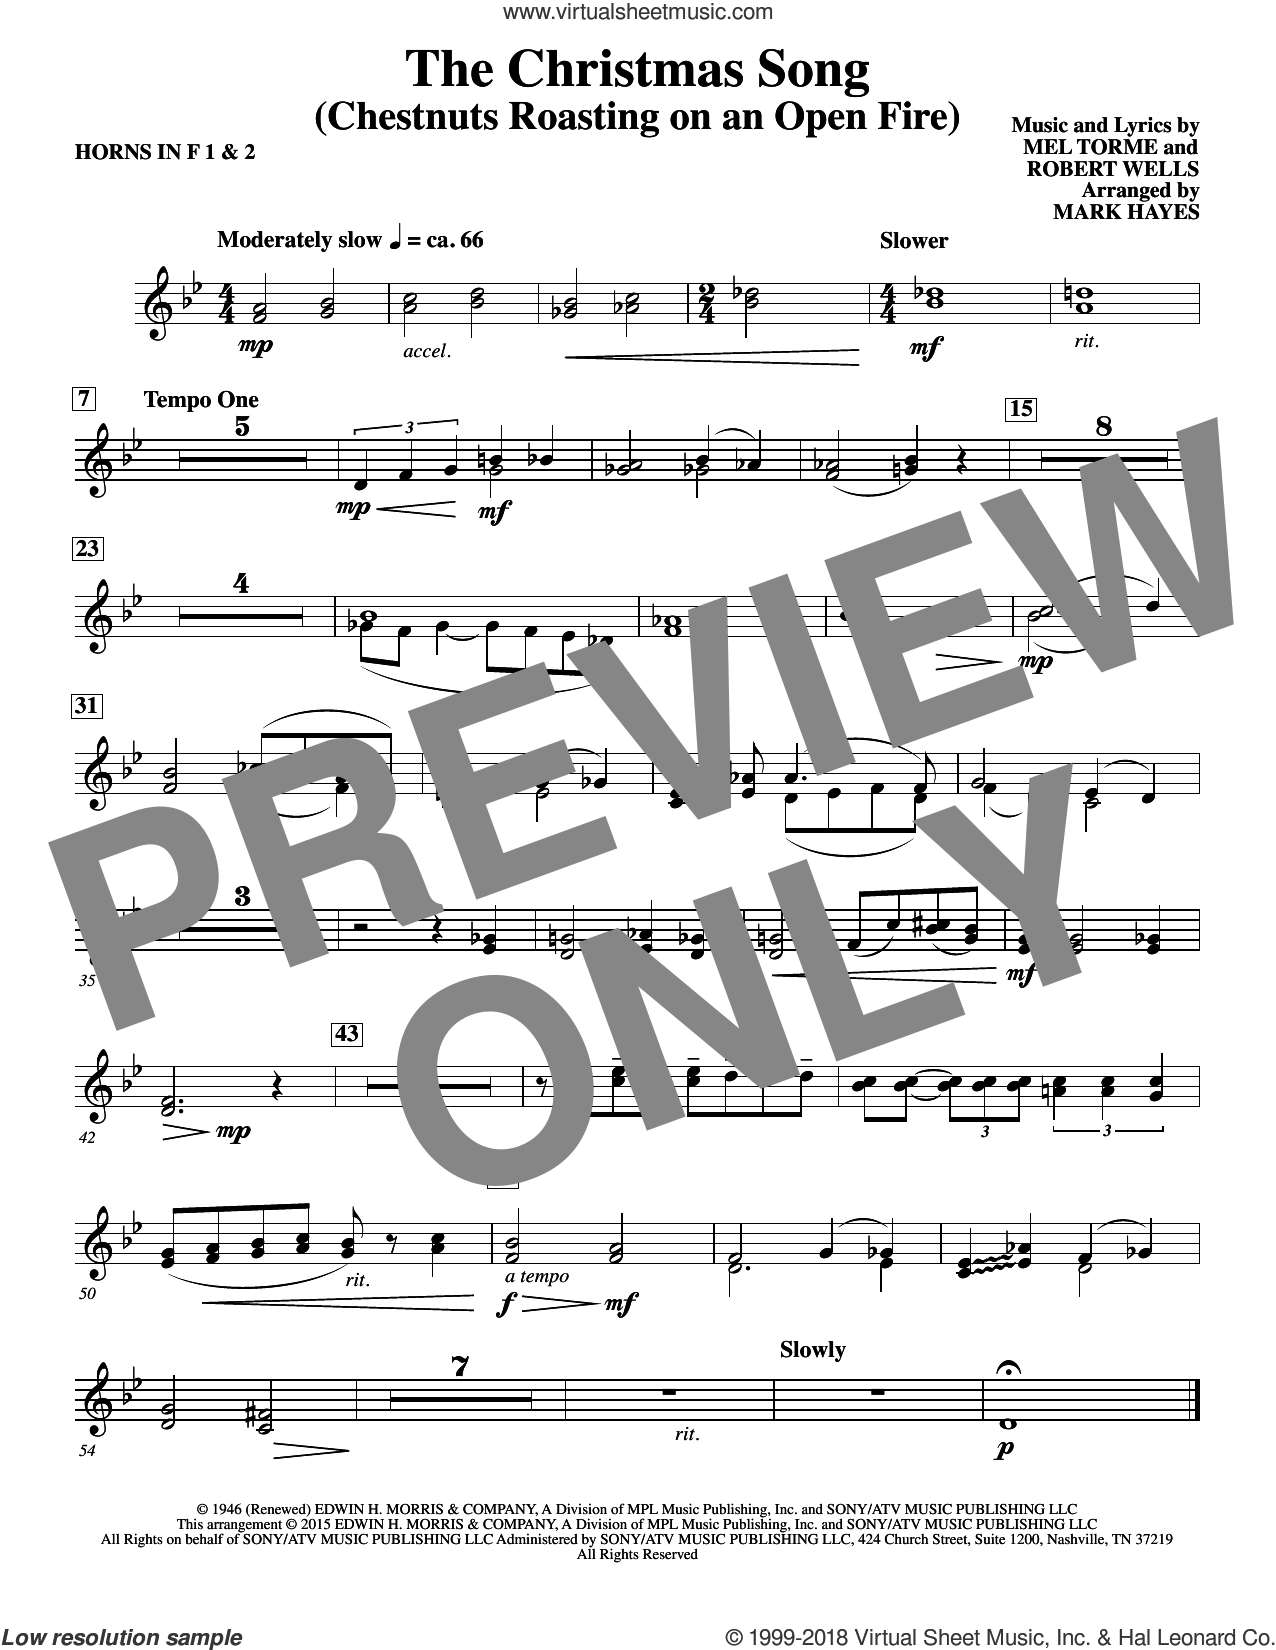 The Christmas Song (Chestnuts Roasting On An Open Fire) sheet music for orchestra/band (f horn 1,2) by Mel Torme, Mark Hayes, Clay Crosse, King Cole Trio, Nat Cole with N. Riddle Orch., Mel Torme and Robert Wells, intermediate skill level